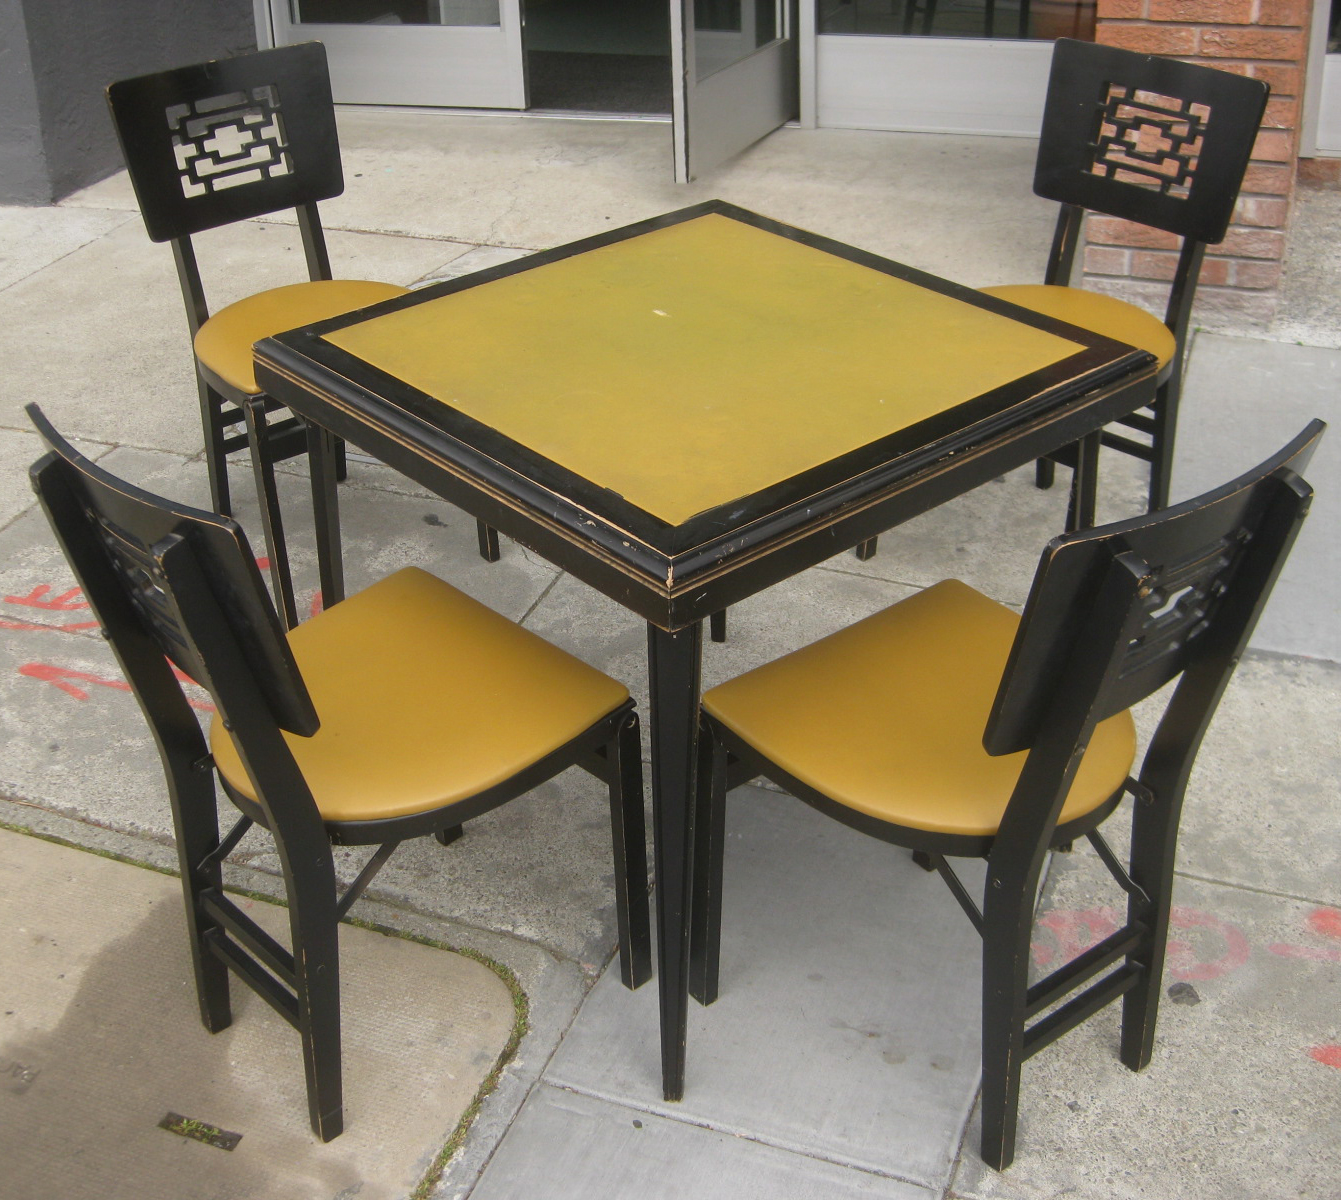 fancy folding dining chairs chair sash alternatives uhuru furniture and collectibles sold table